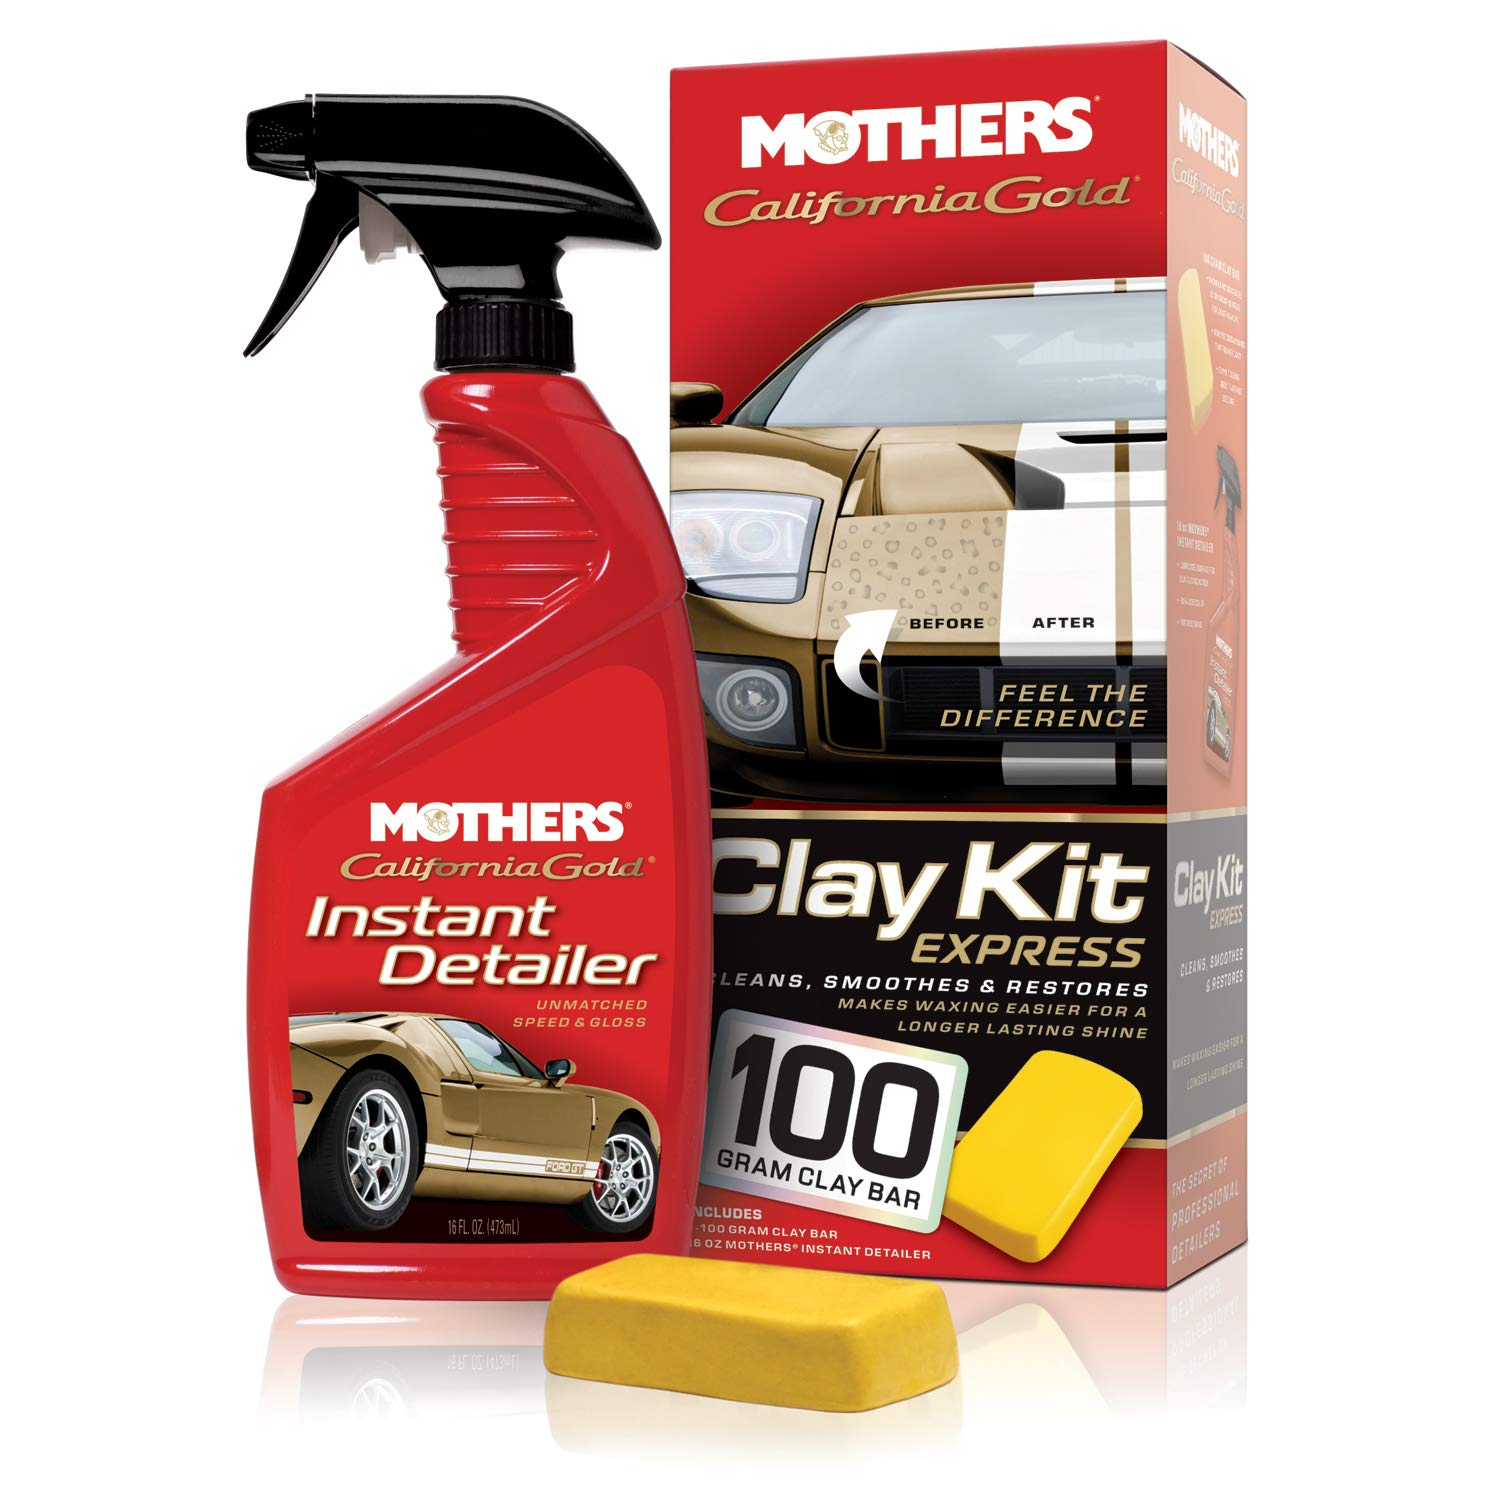 Mother's California Gold Clay Kit Express